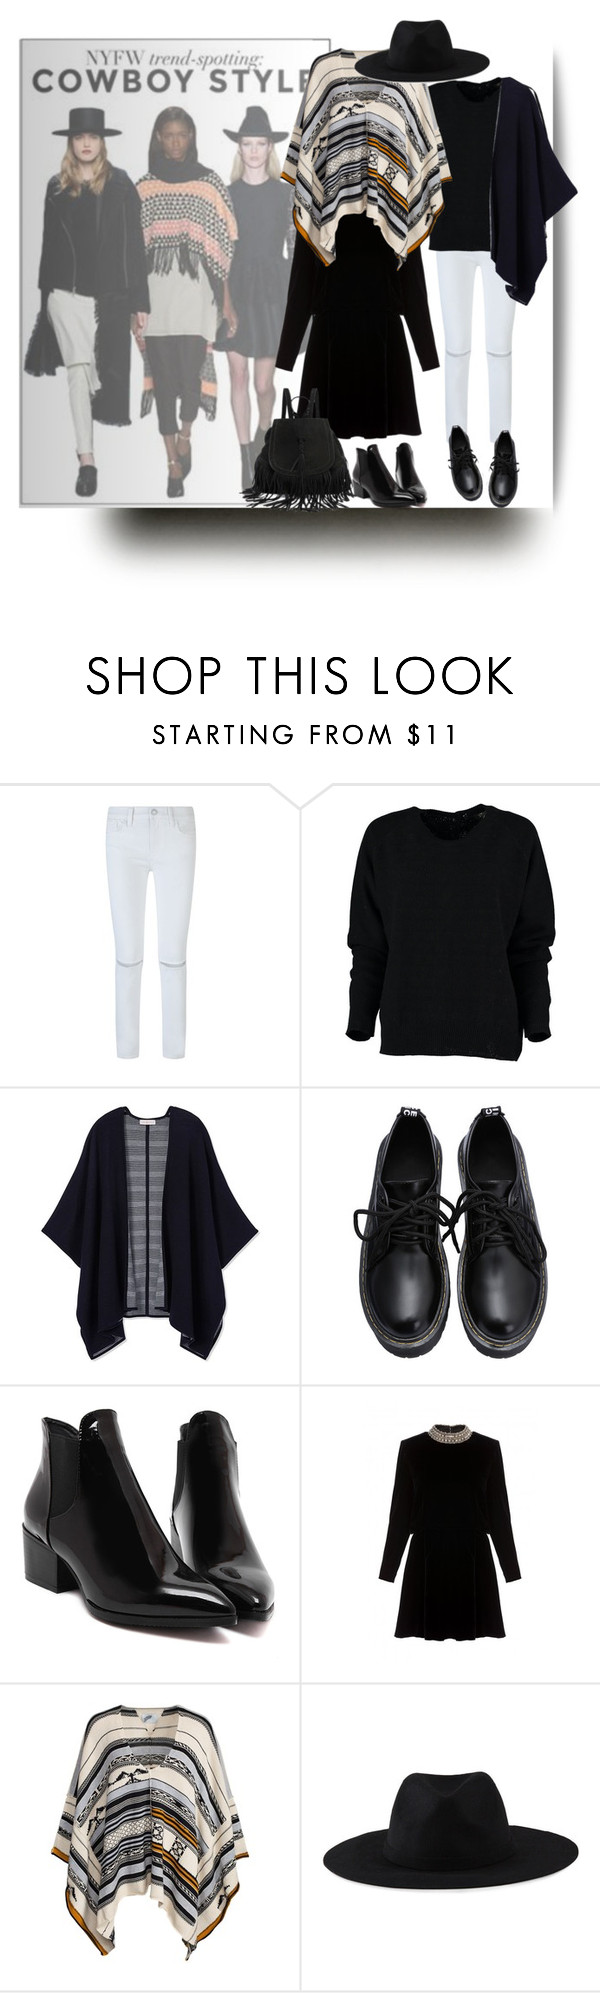 """""""Cowboy style"""" by barbara-gennari ❤ liked on Polyvore featuring Rebecca Minkoff, Tory Burch, Yves Saint Laurent and Element"""